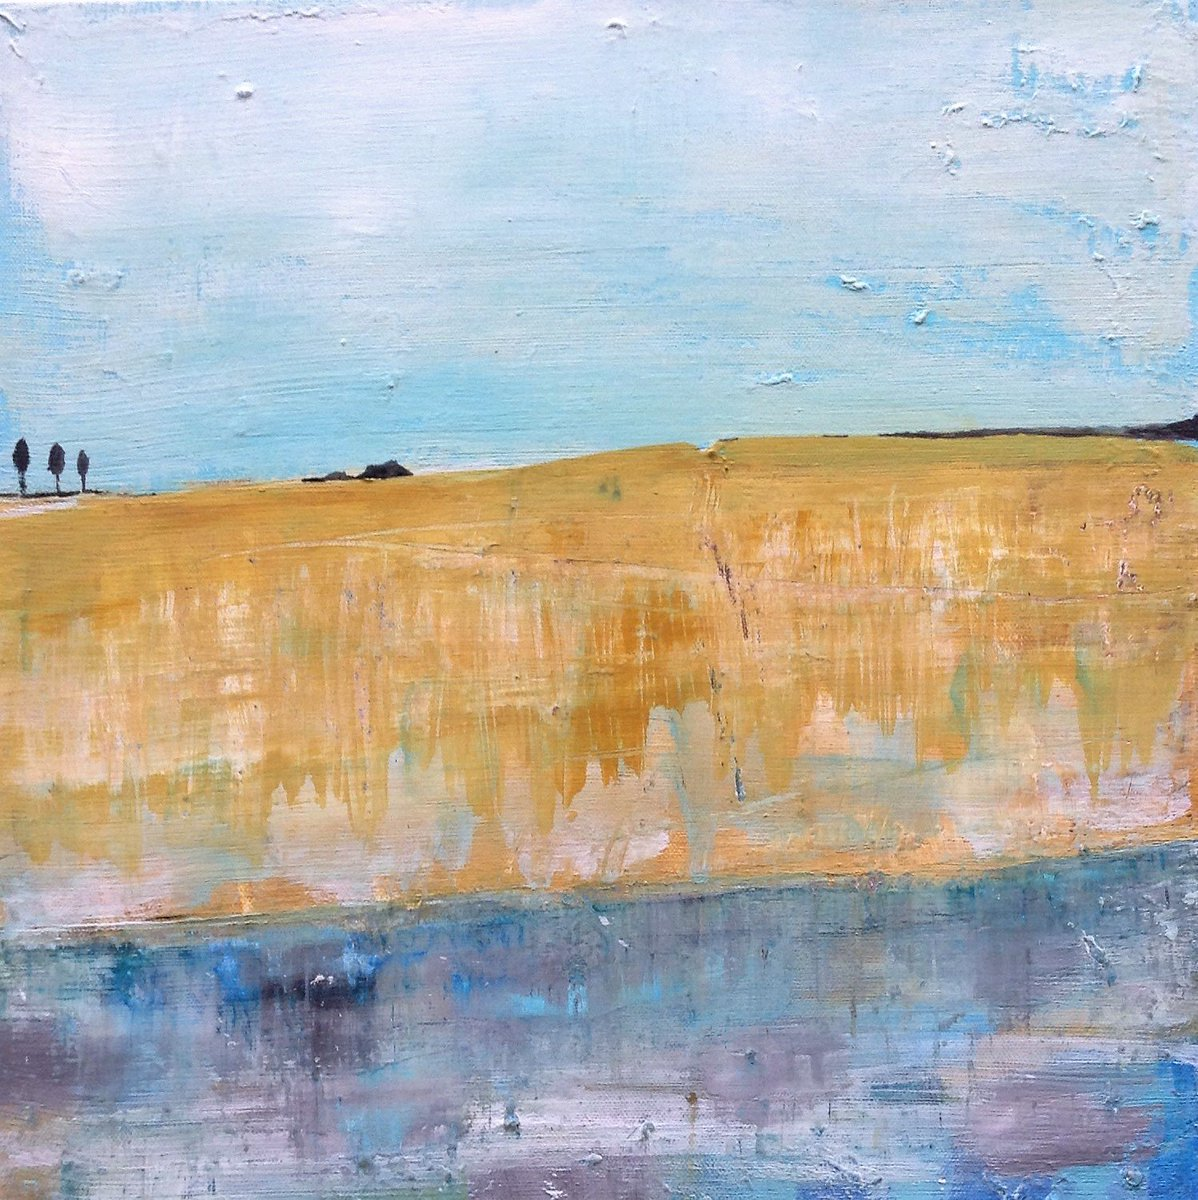 Summer Landscape - acrylic on board #art #painting #abstract #landscape #interiordesign #decor #interiors #new #forsale #summer #available<br>http://pic.twitter.com/J7ar7sGOS5